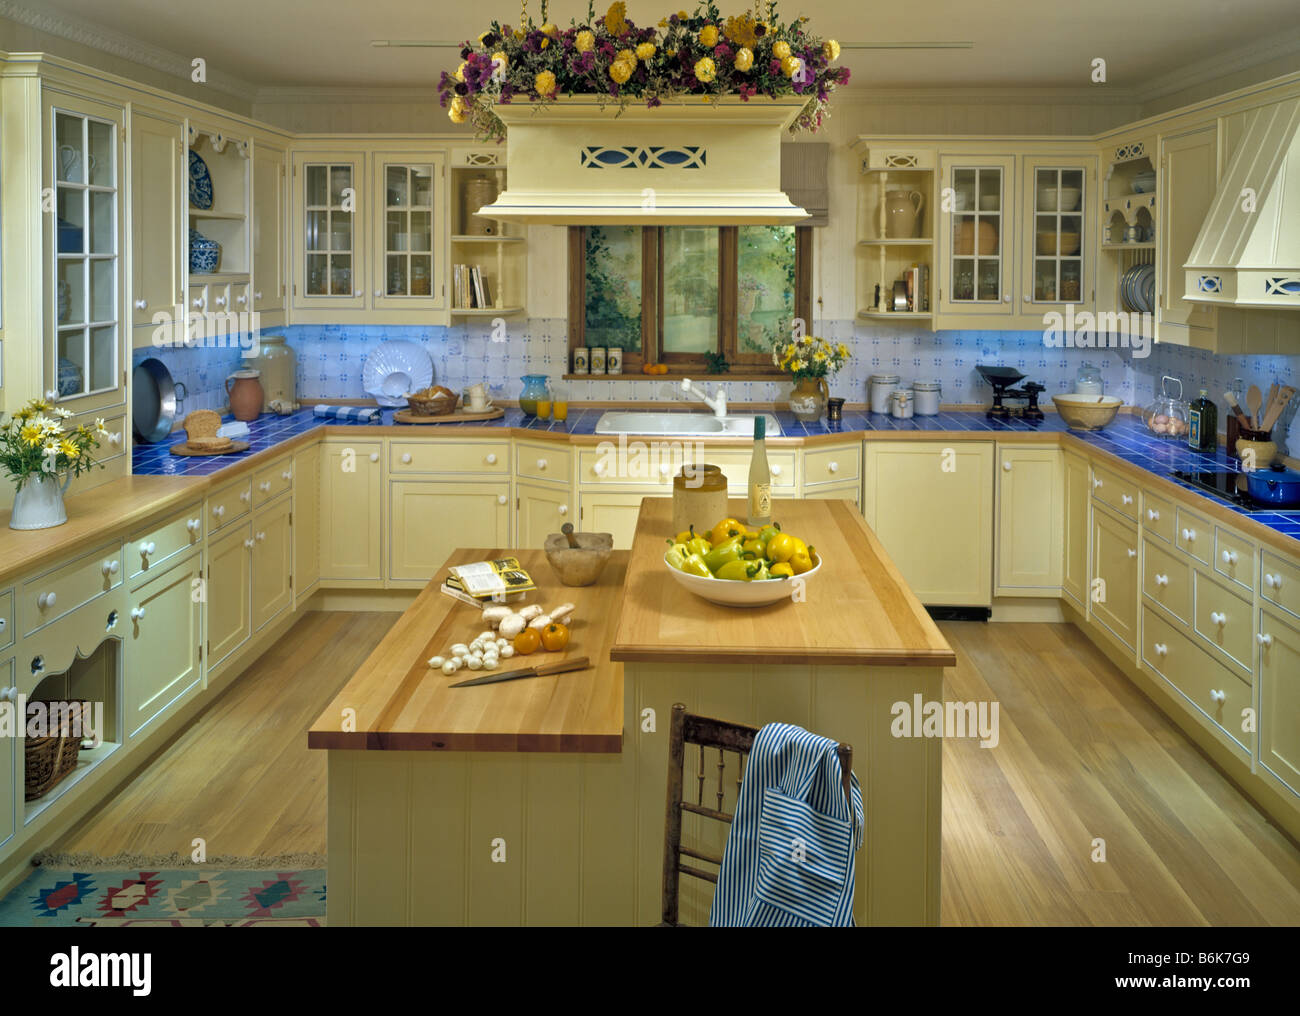 Architectural Interior Design Homes Houses Estate Kitchen Appliances - Island counter lighting